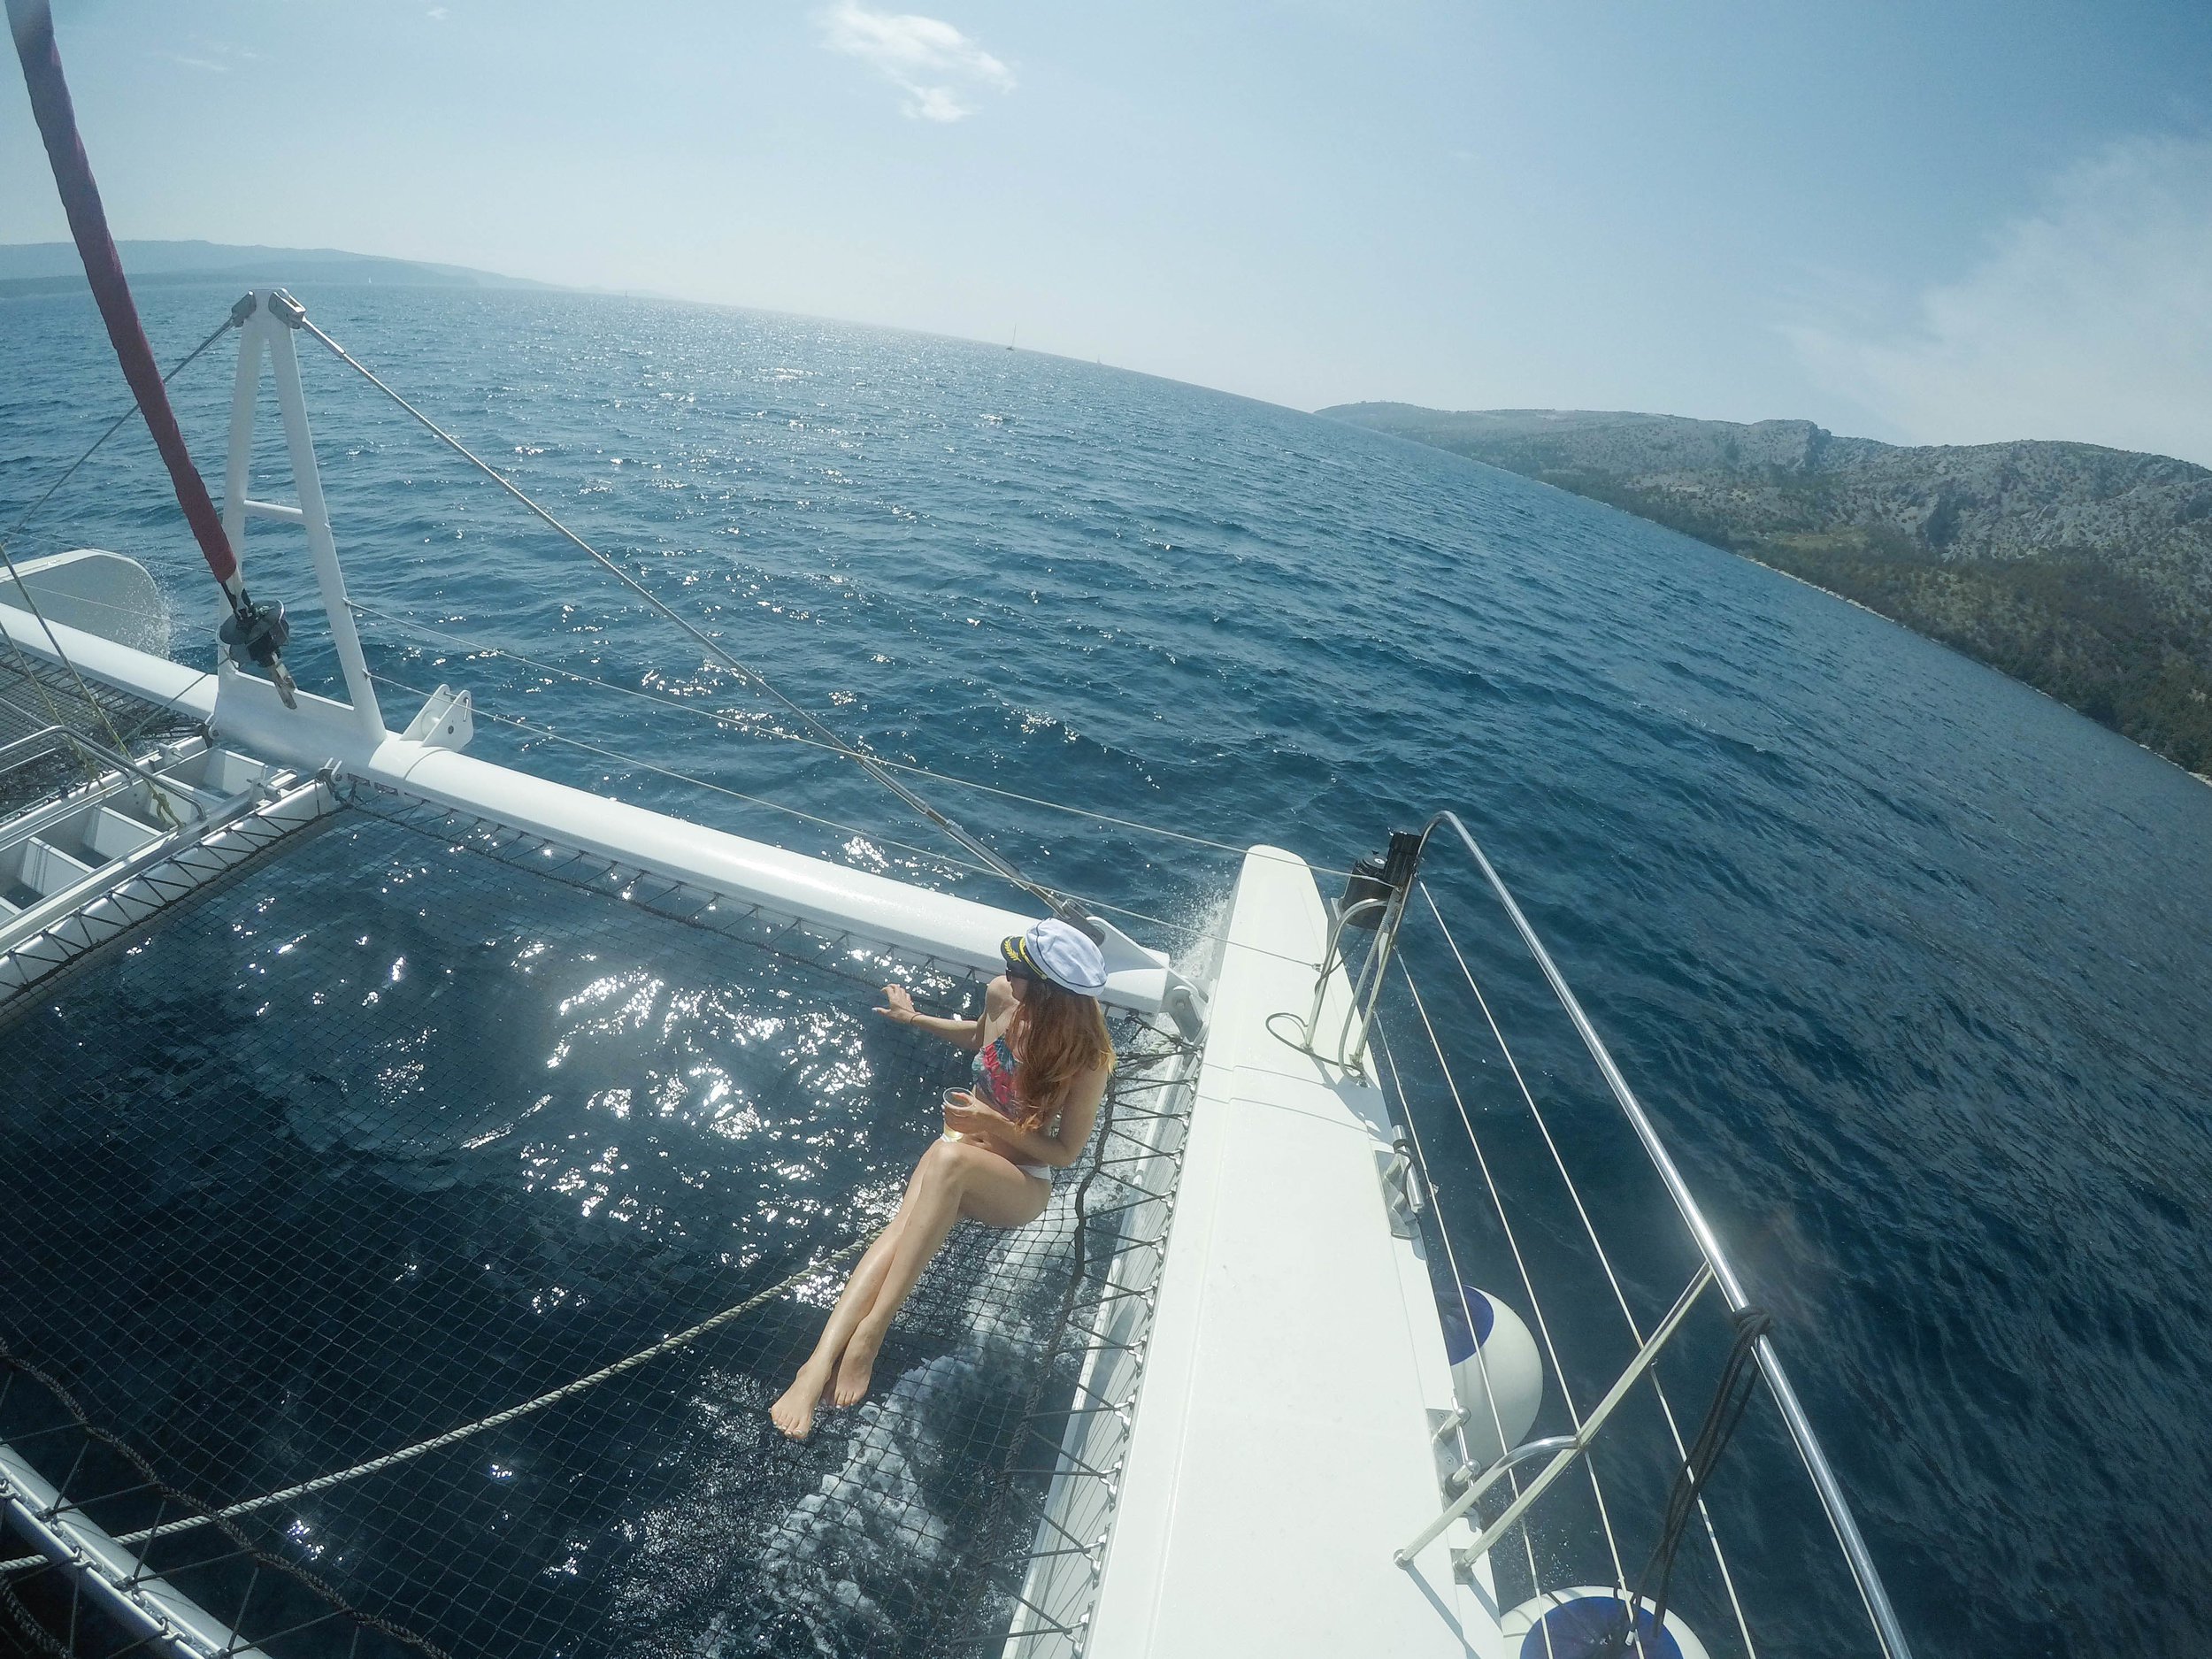 sailing around croatias islands is one of the best past times, two of our days were spent on boats!